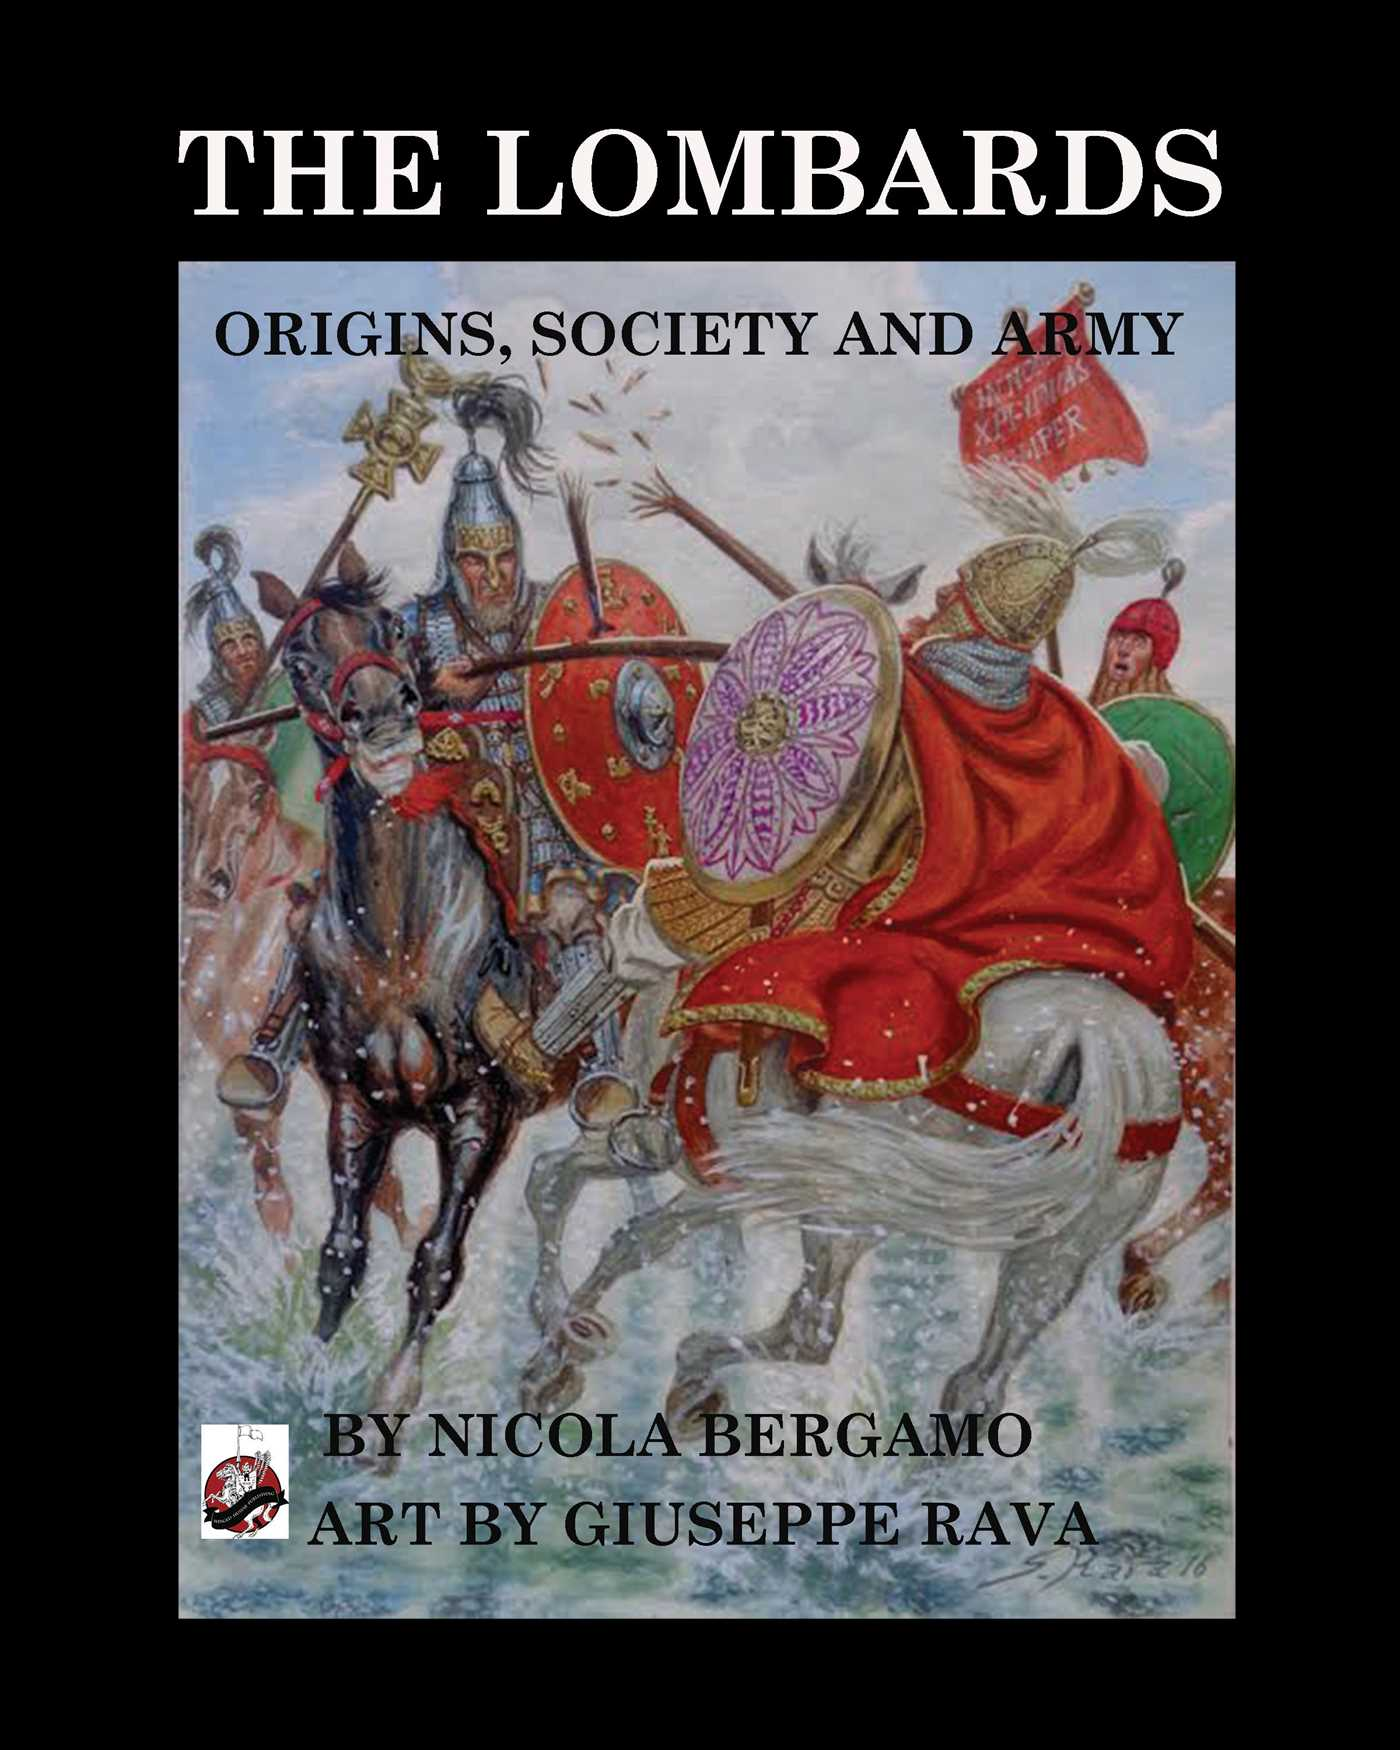 The lombards 9781945430022 hr